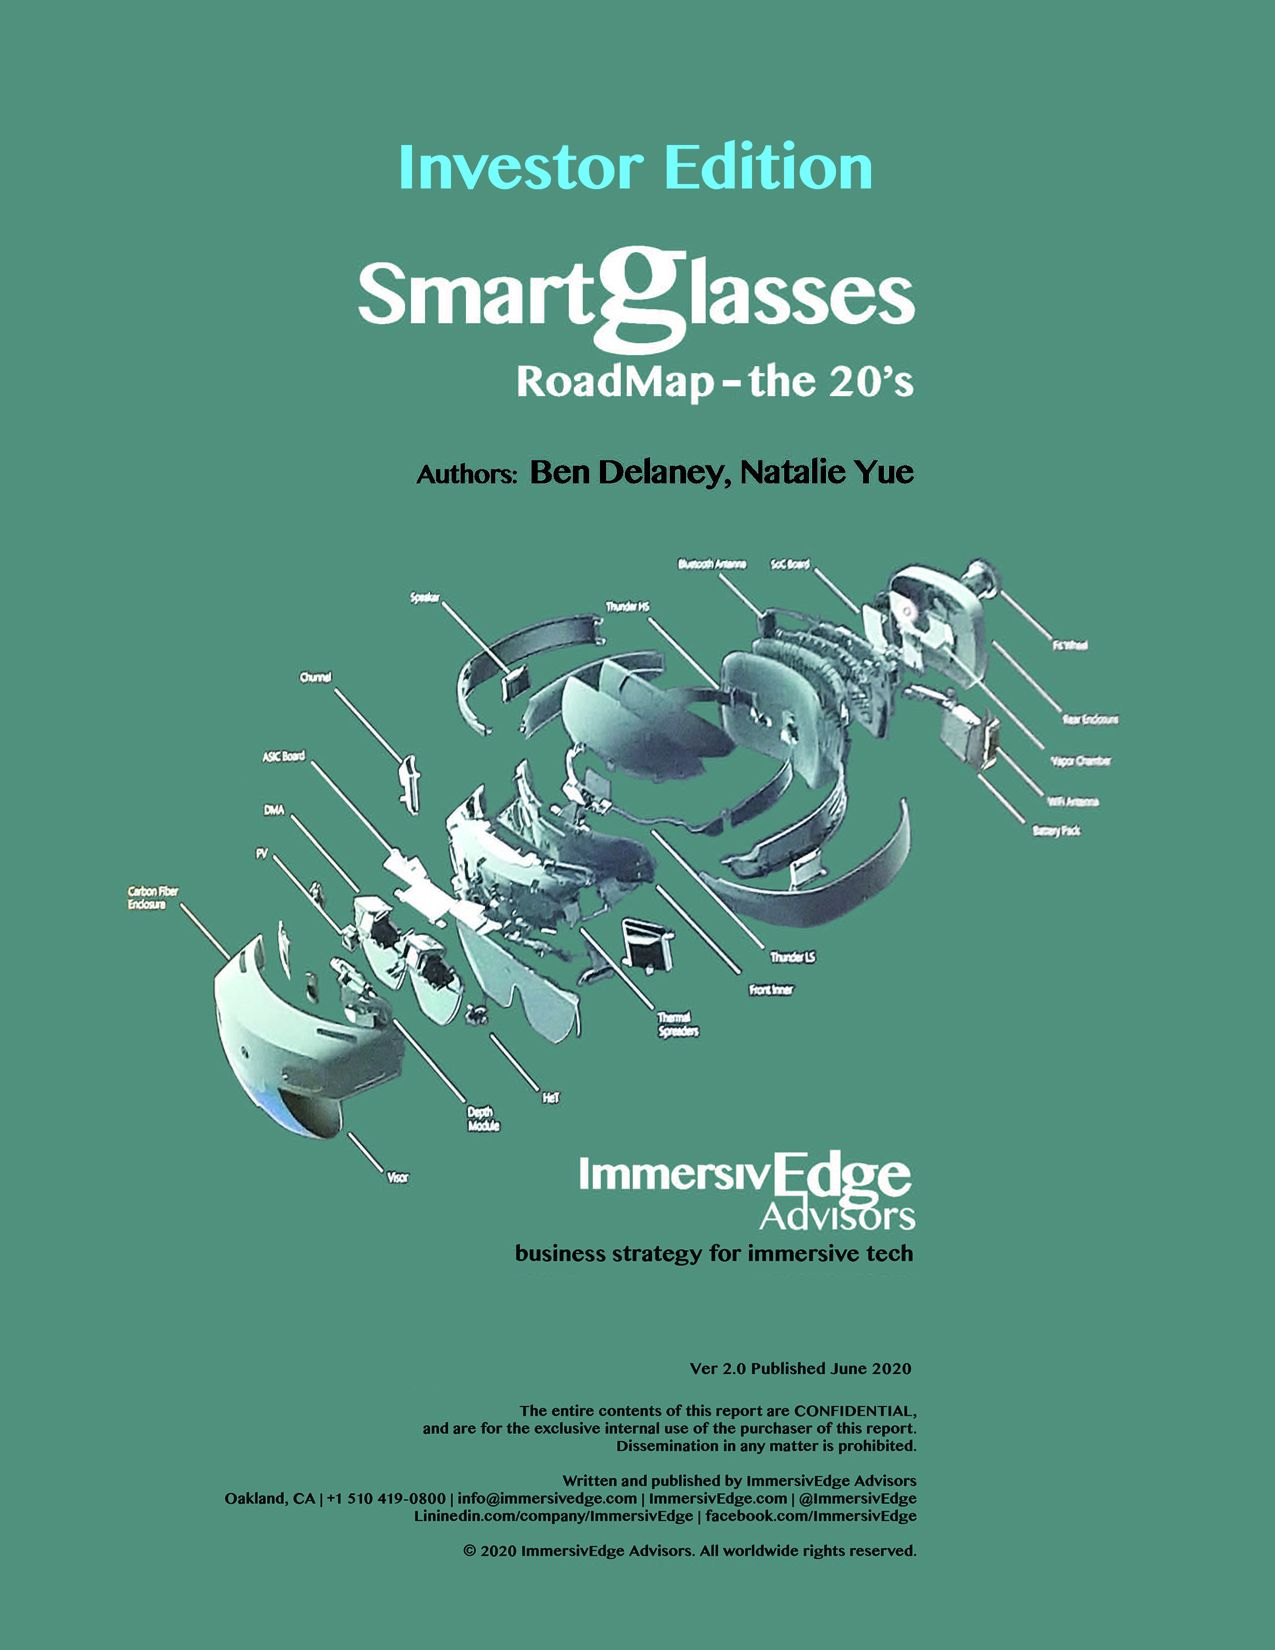 Smartglasses Roadmap, Investor Edition